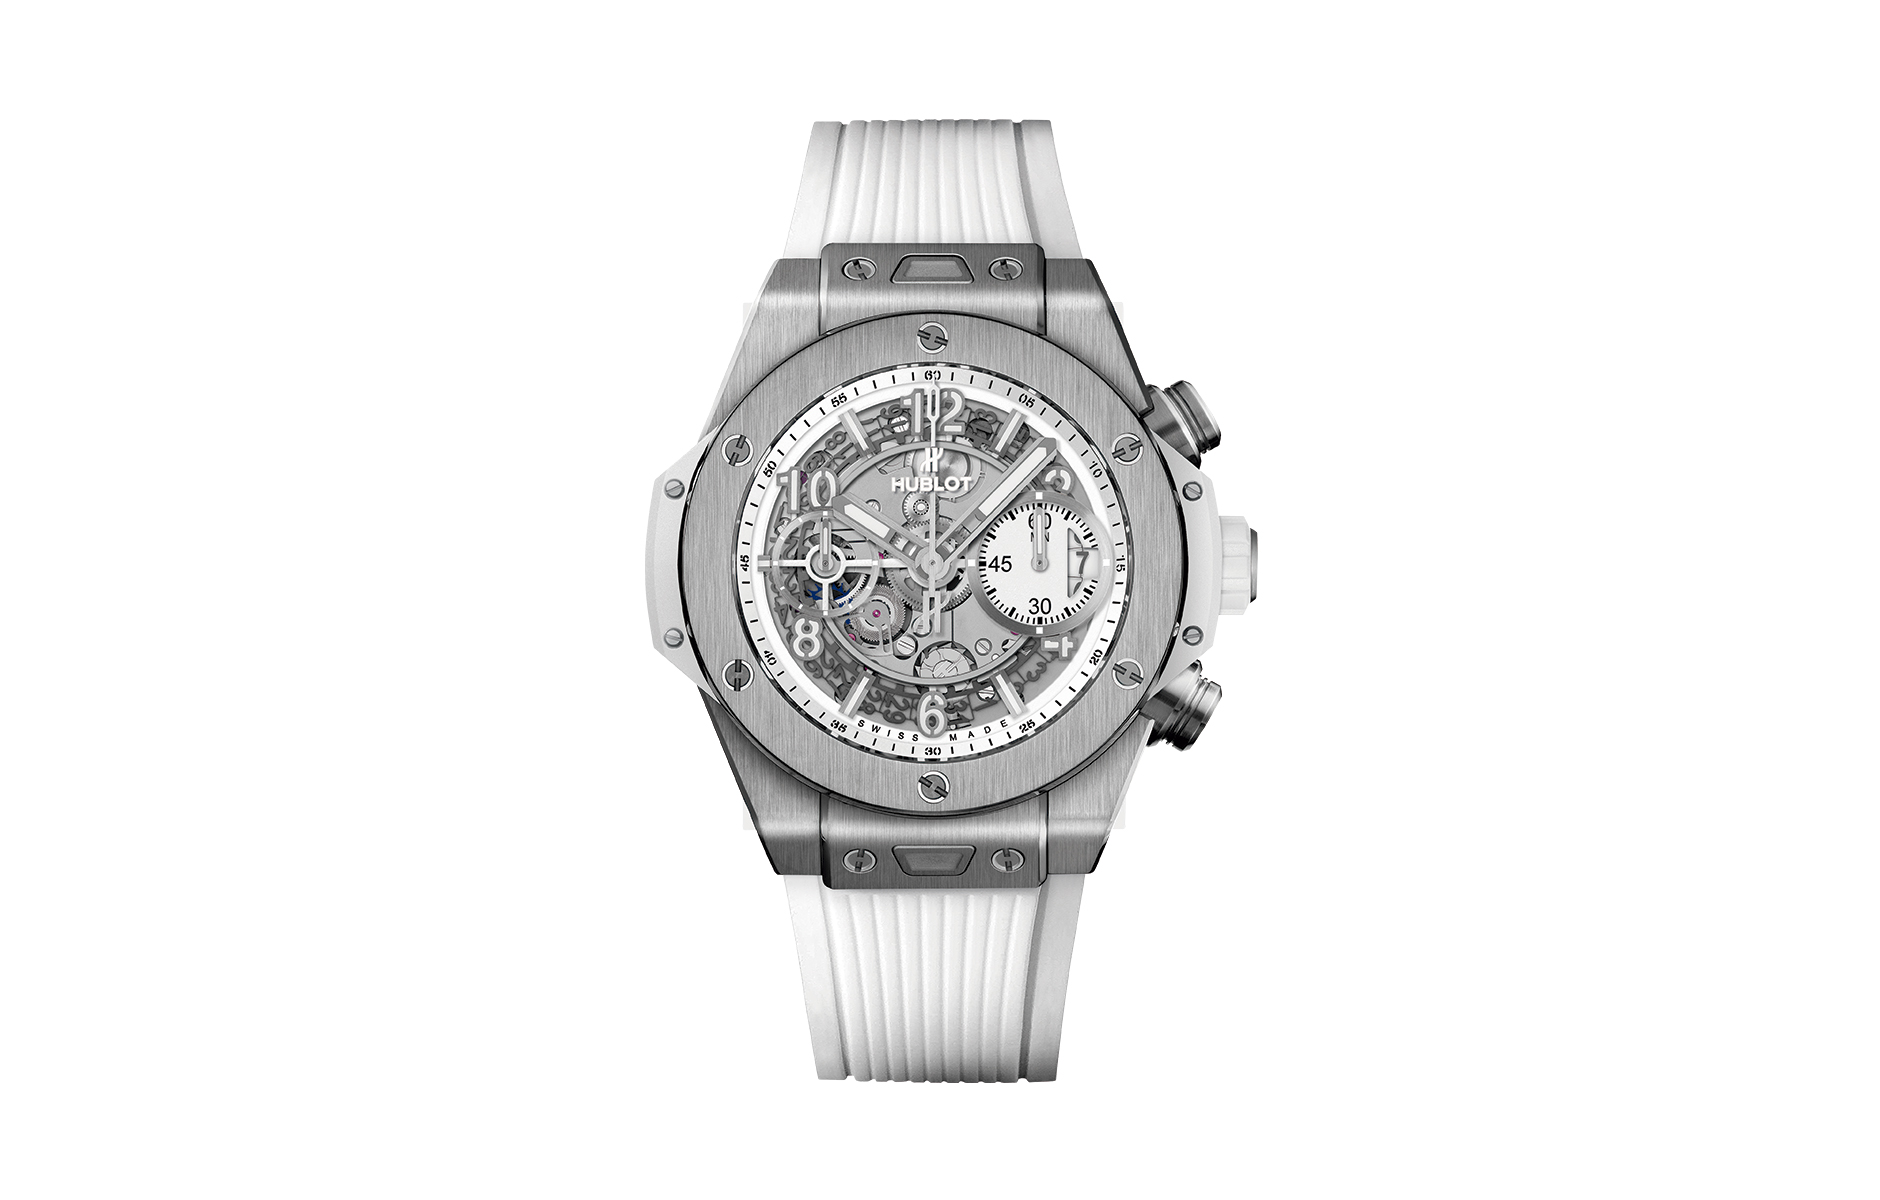 soberbia_pecado_reloj_hublot_revista_mine